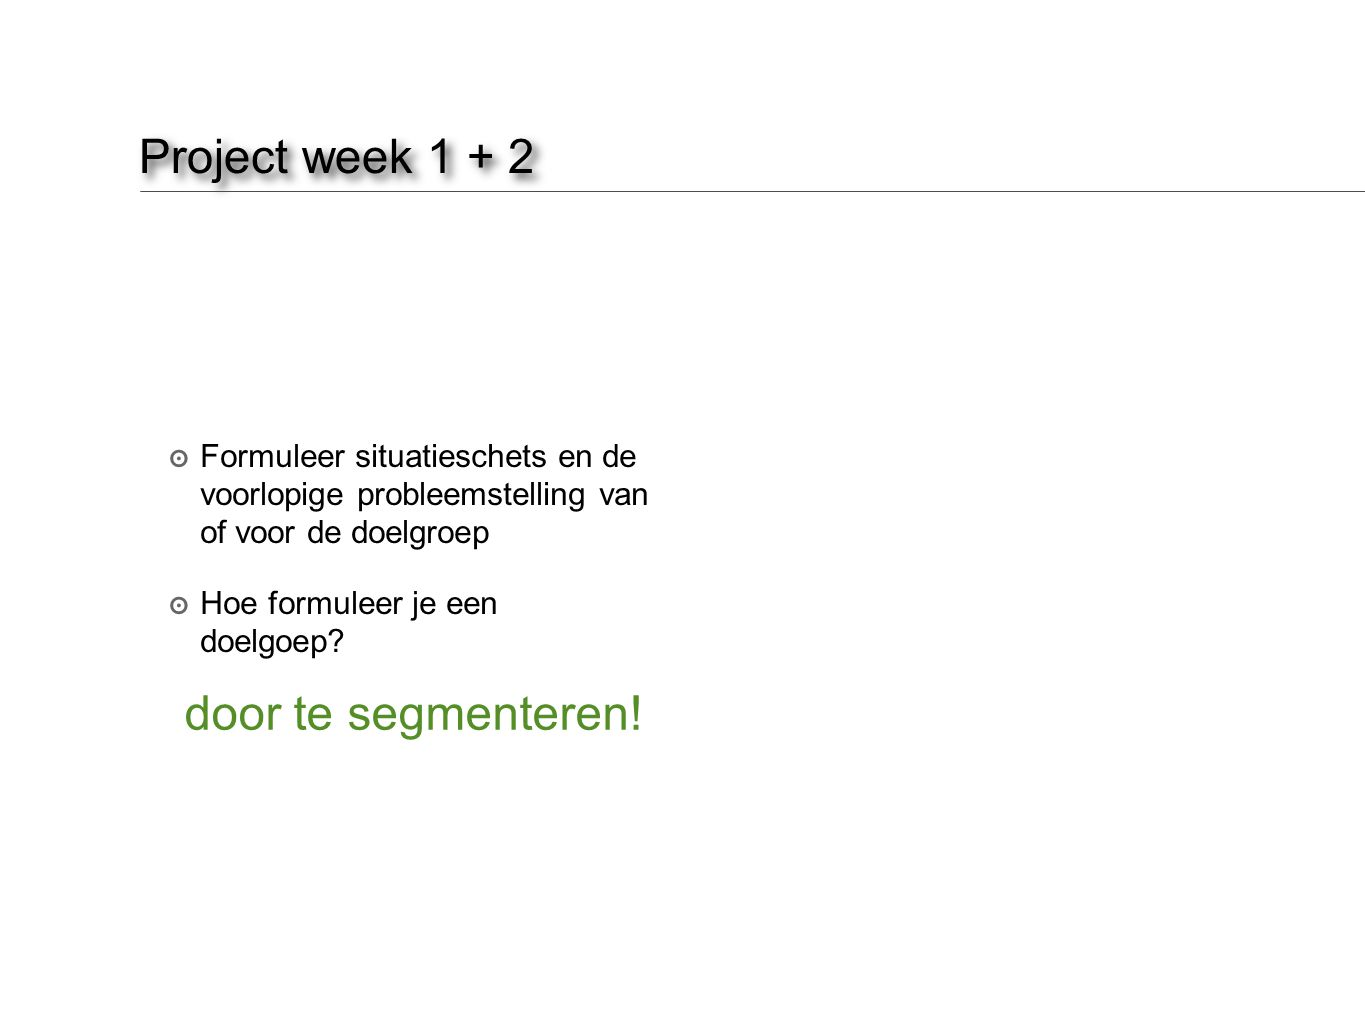 Project week 1 + 2 door te segmenteren!